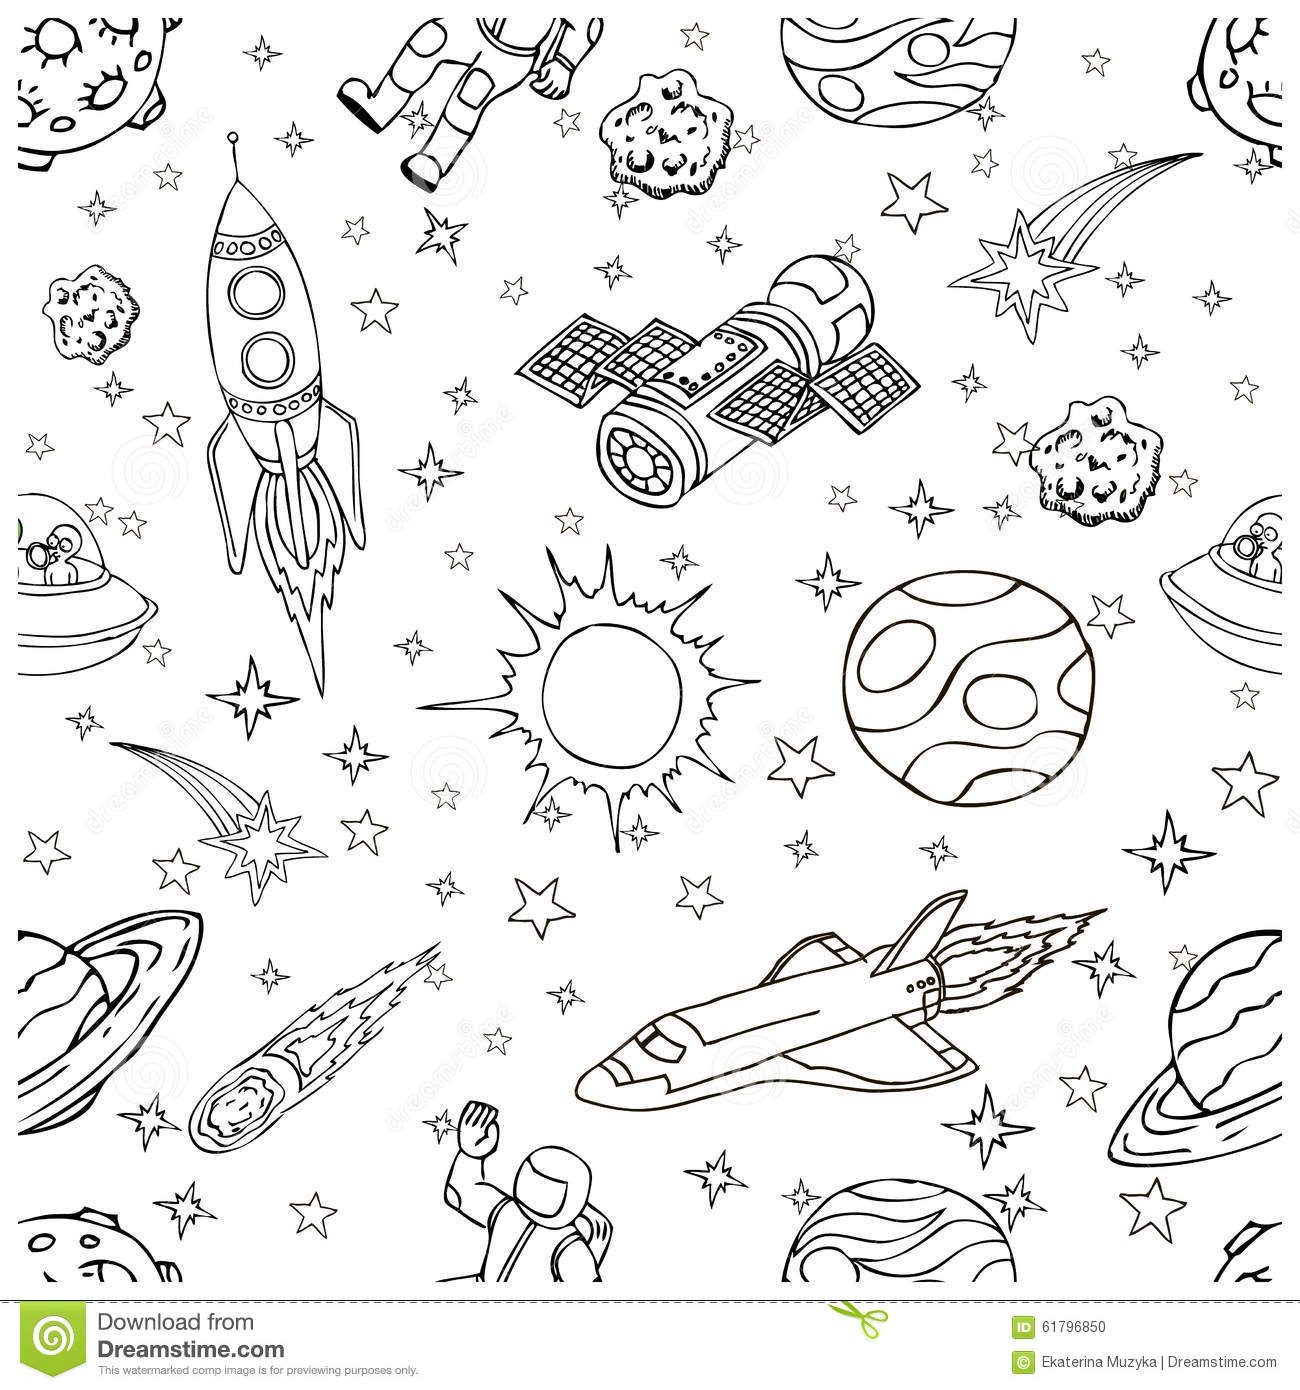 Outer Space Doodles Symbols And Design Elements Stock